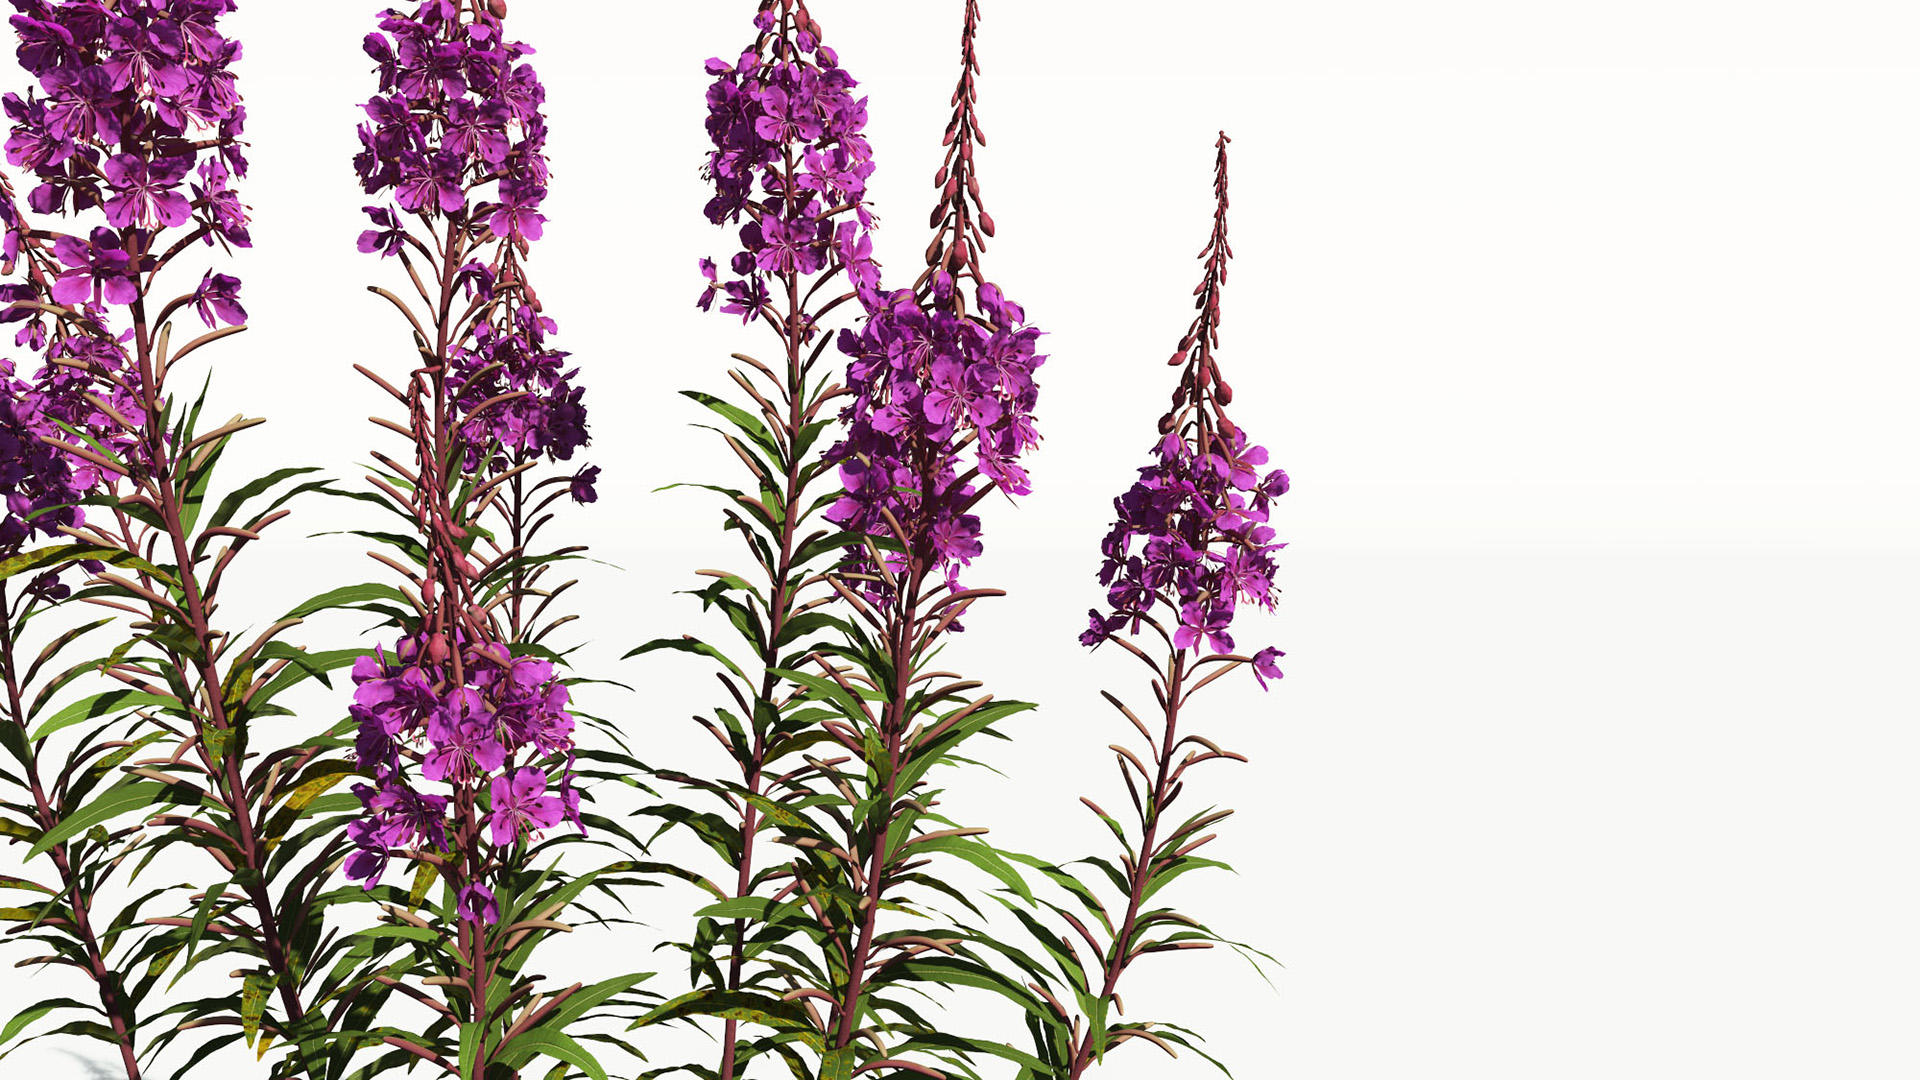 3D model of the Fireweed Chamerion angustifolium